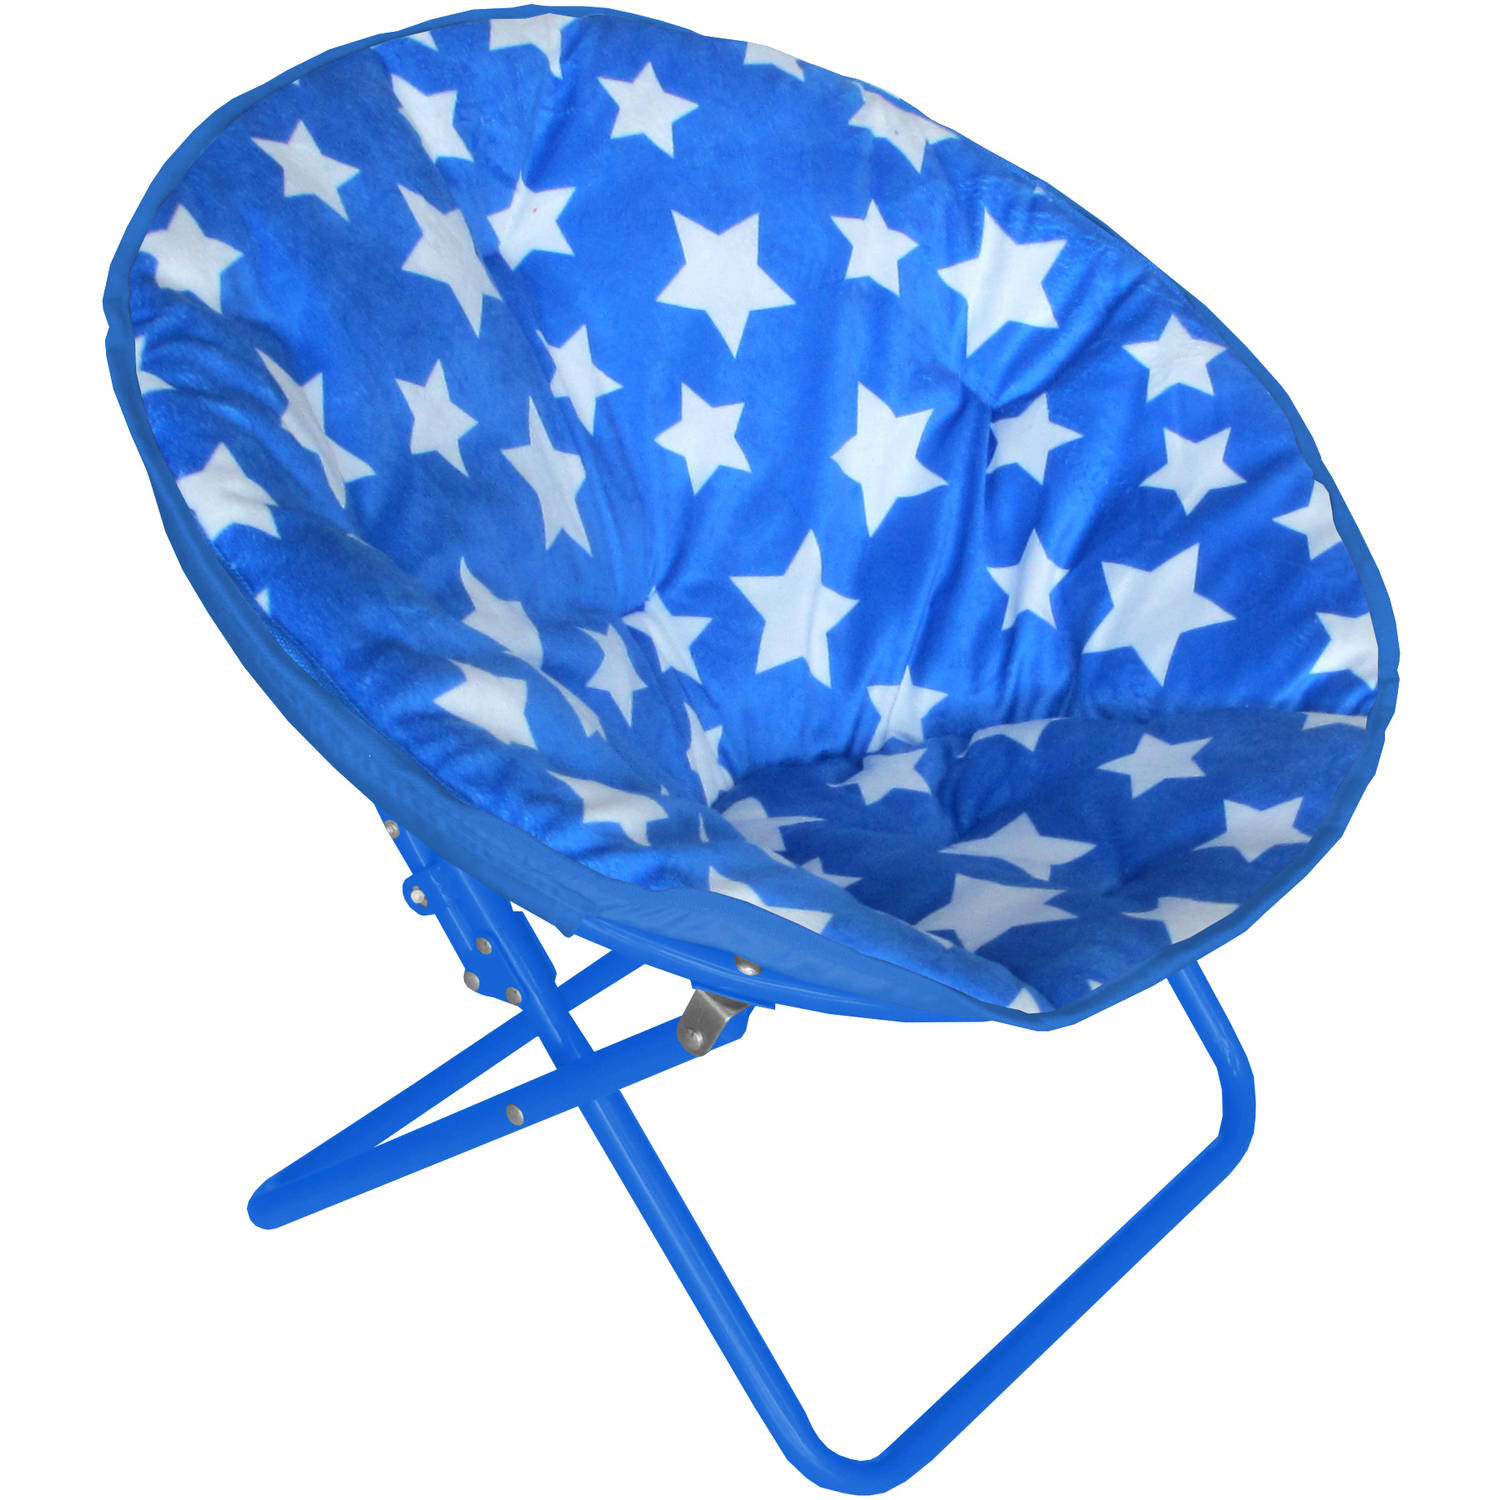 Baby bath chair walmart - Baby Bath Chair Walmart 55